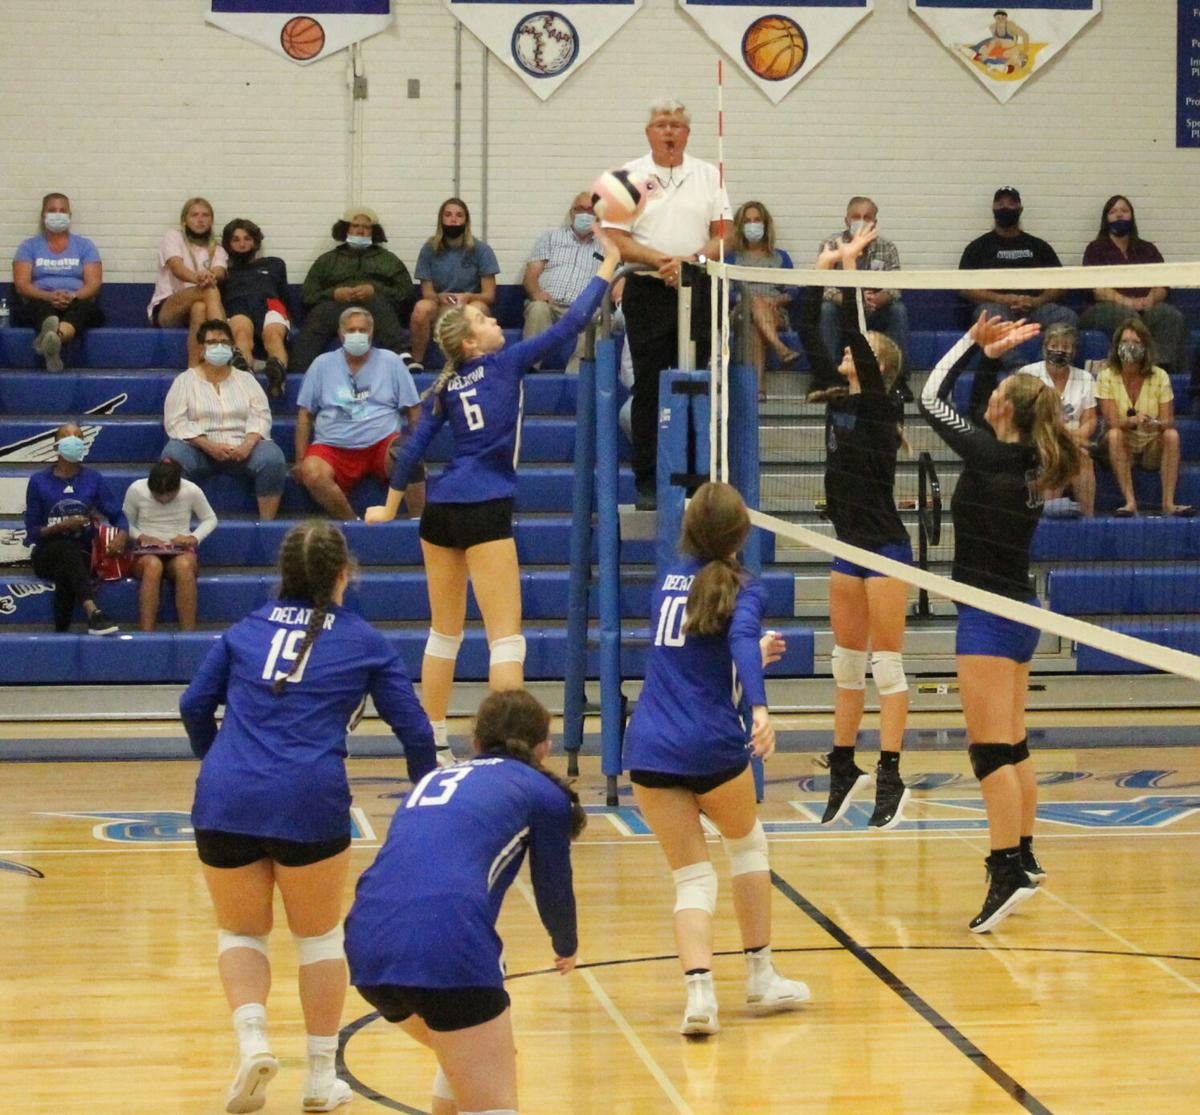 SD volleyball 1 10821